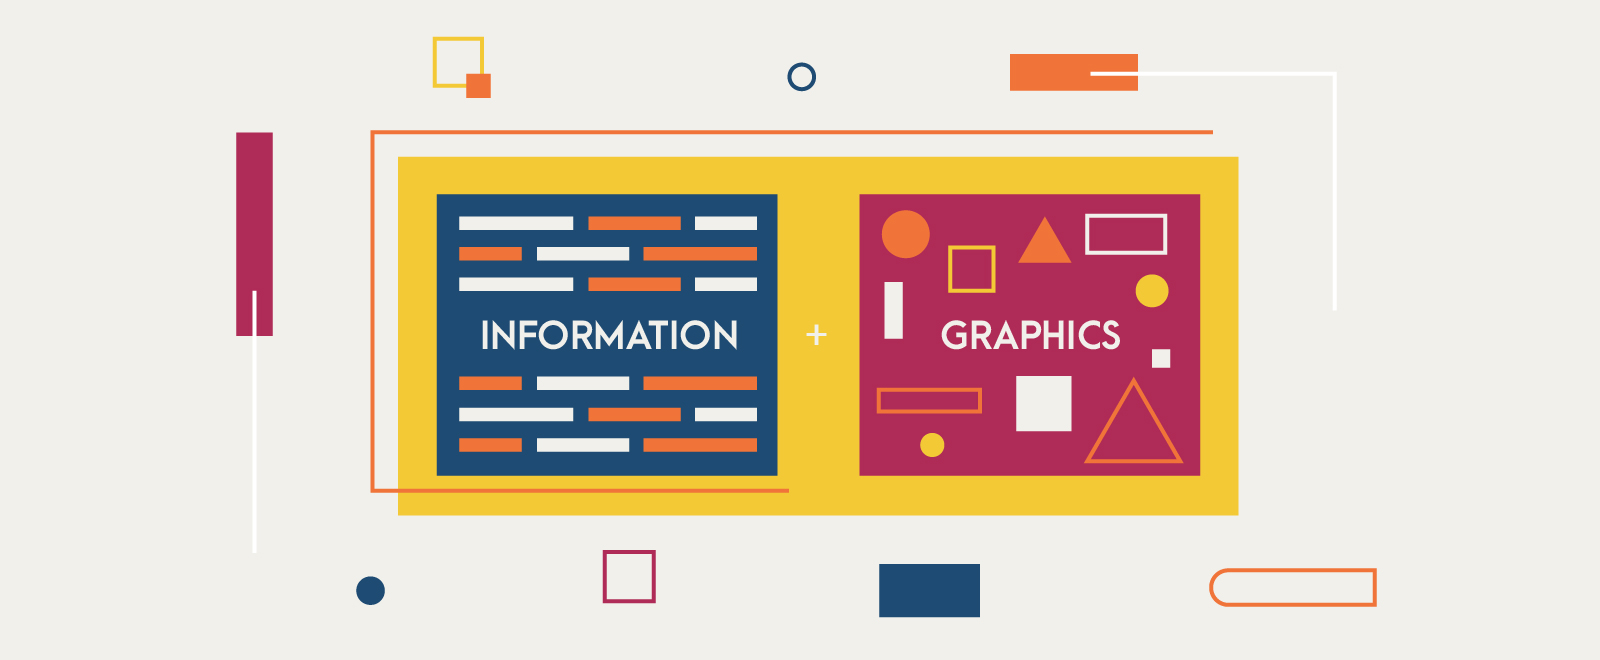 image of information and graphics combined into one super content